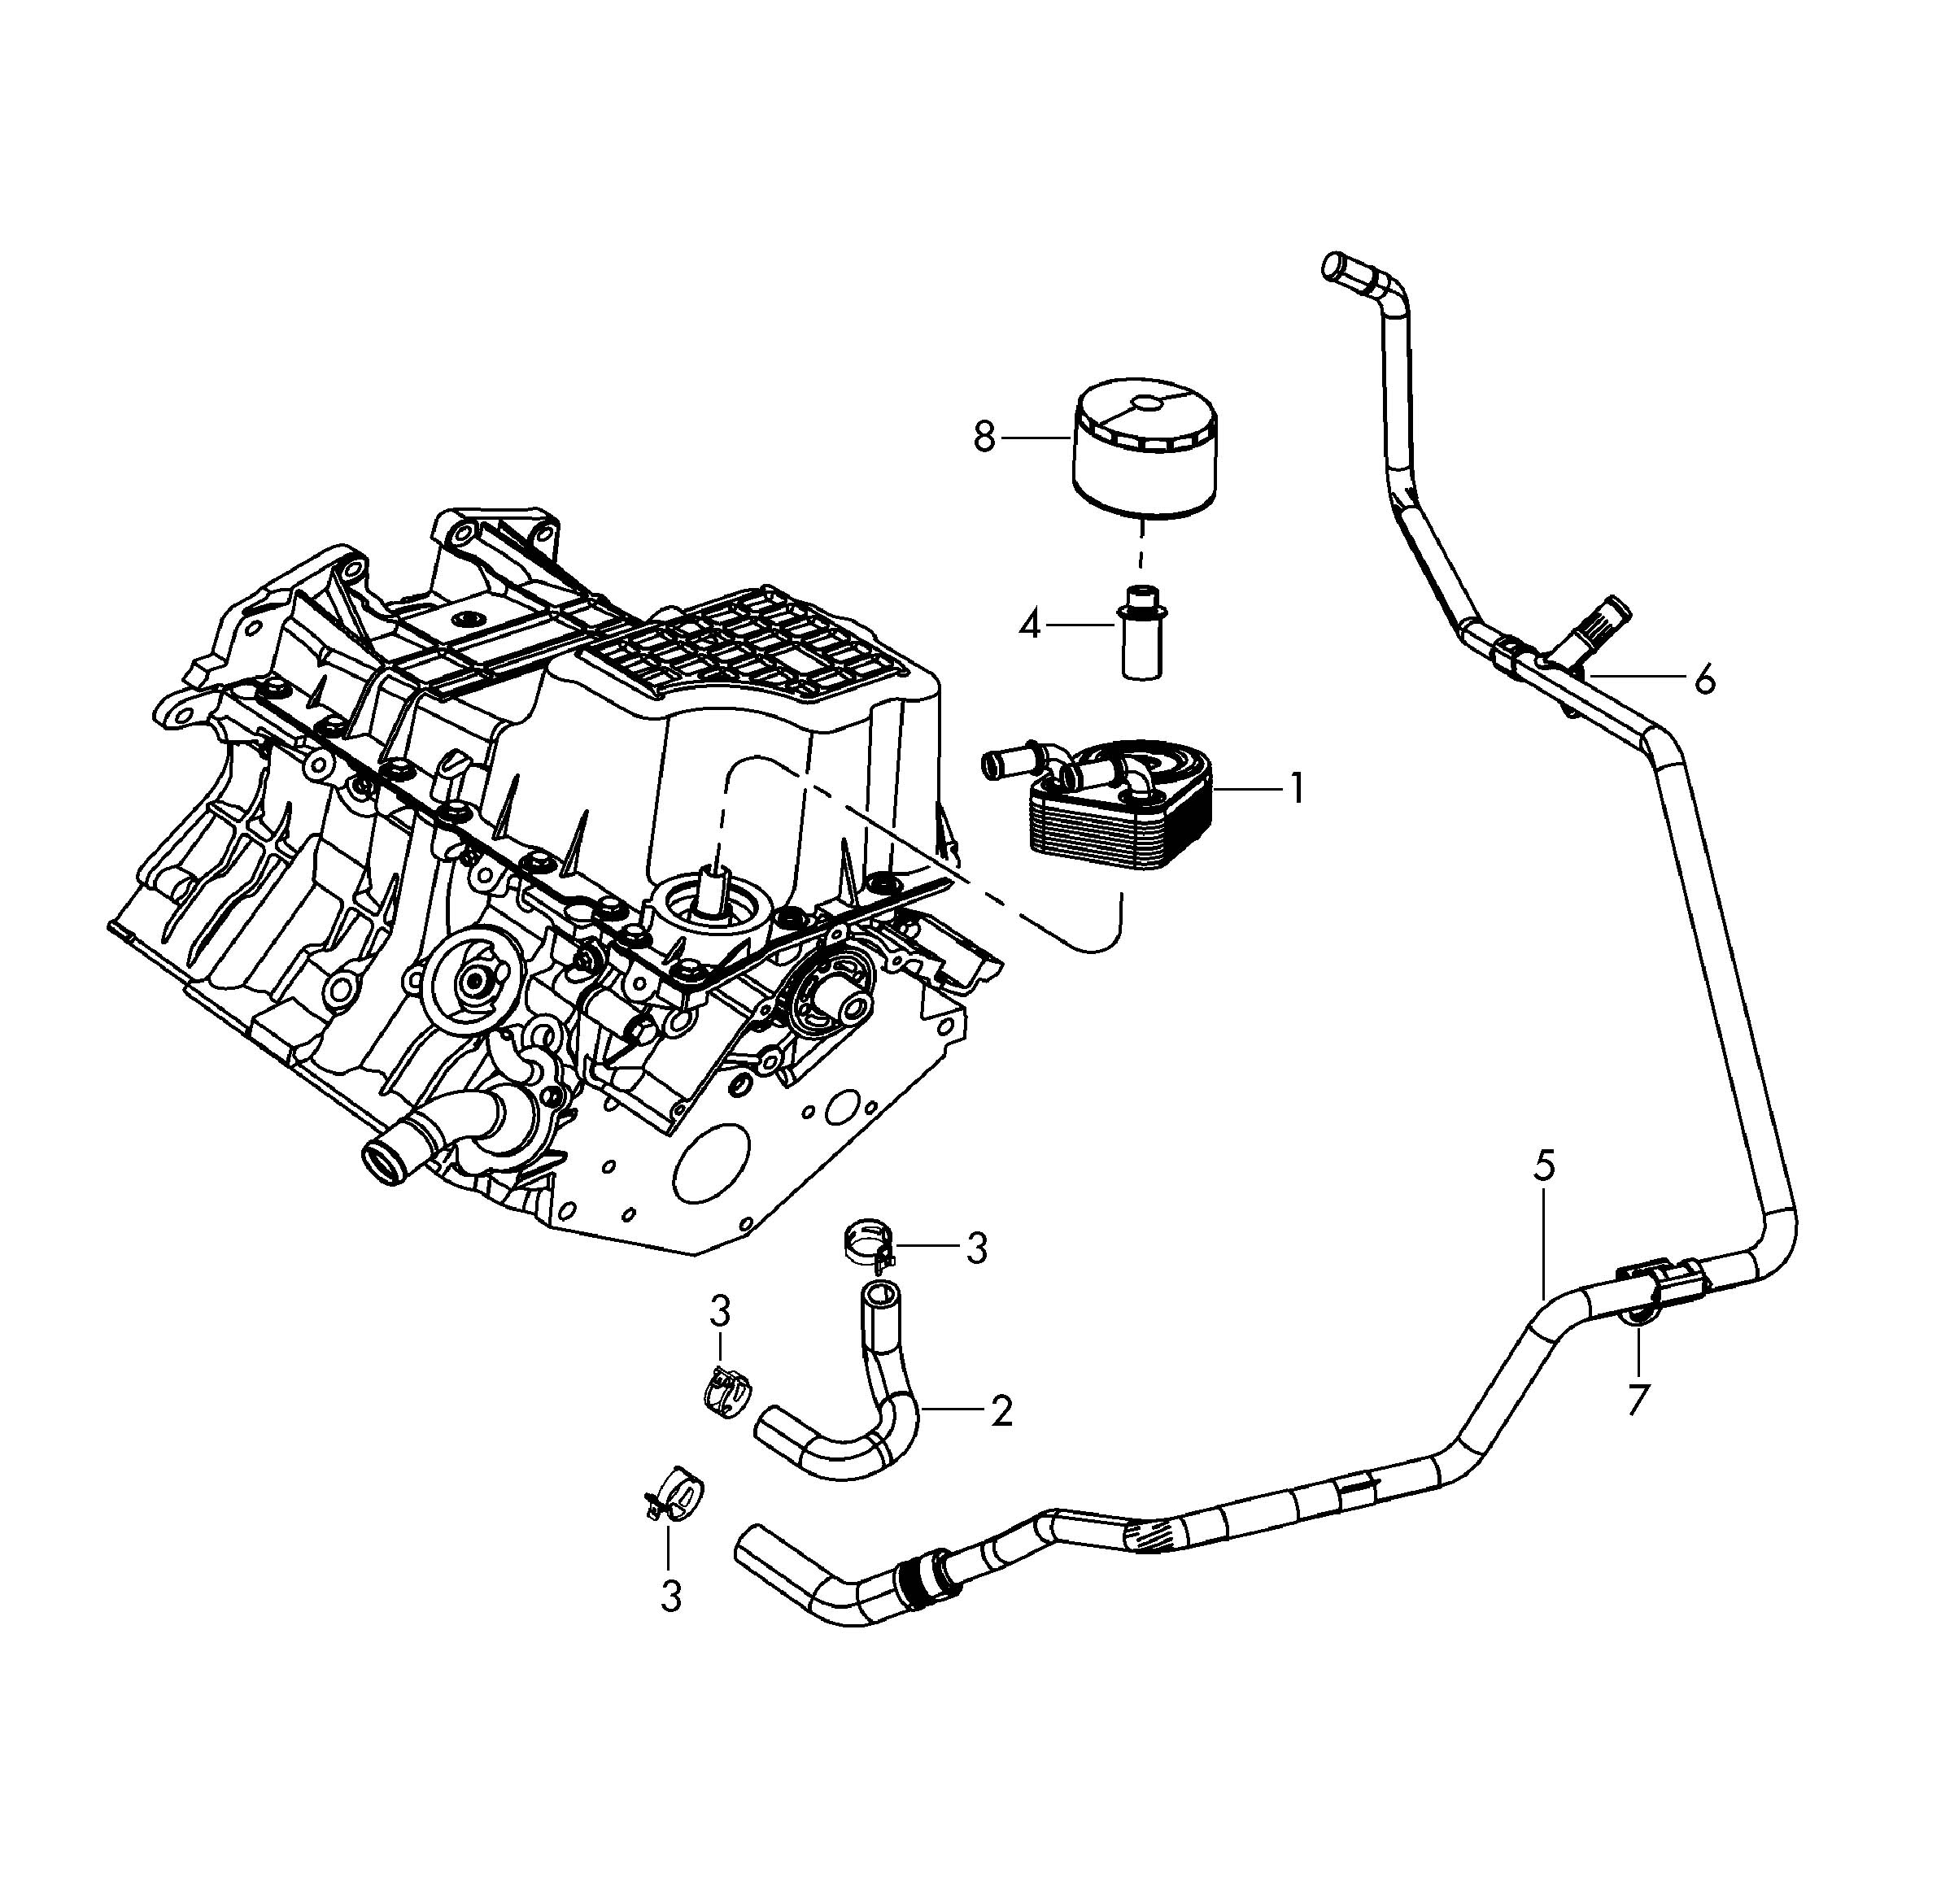 Volkswagen Routan Water Coolant Pipe With Water Hose